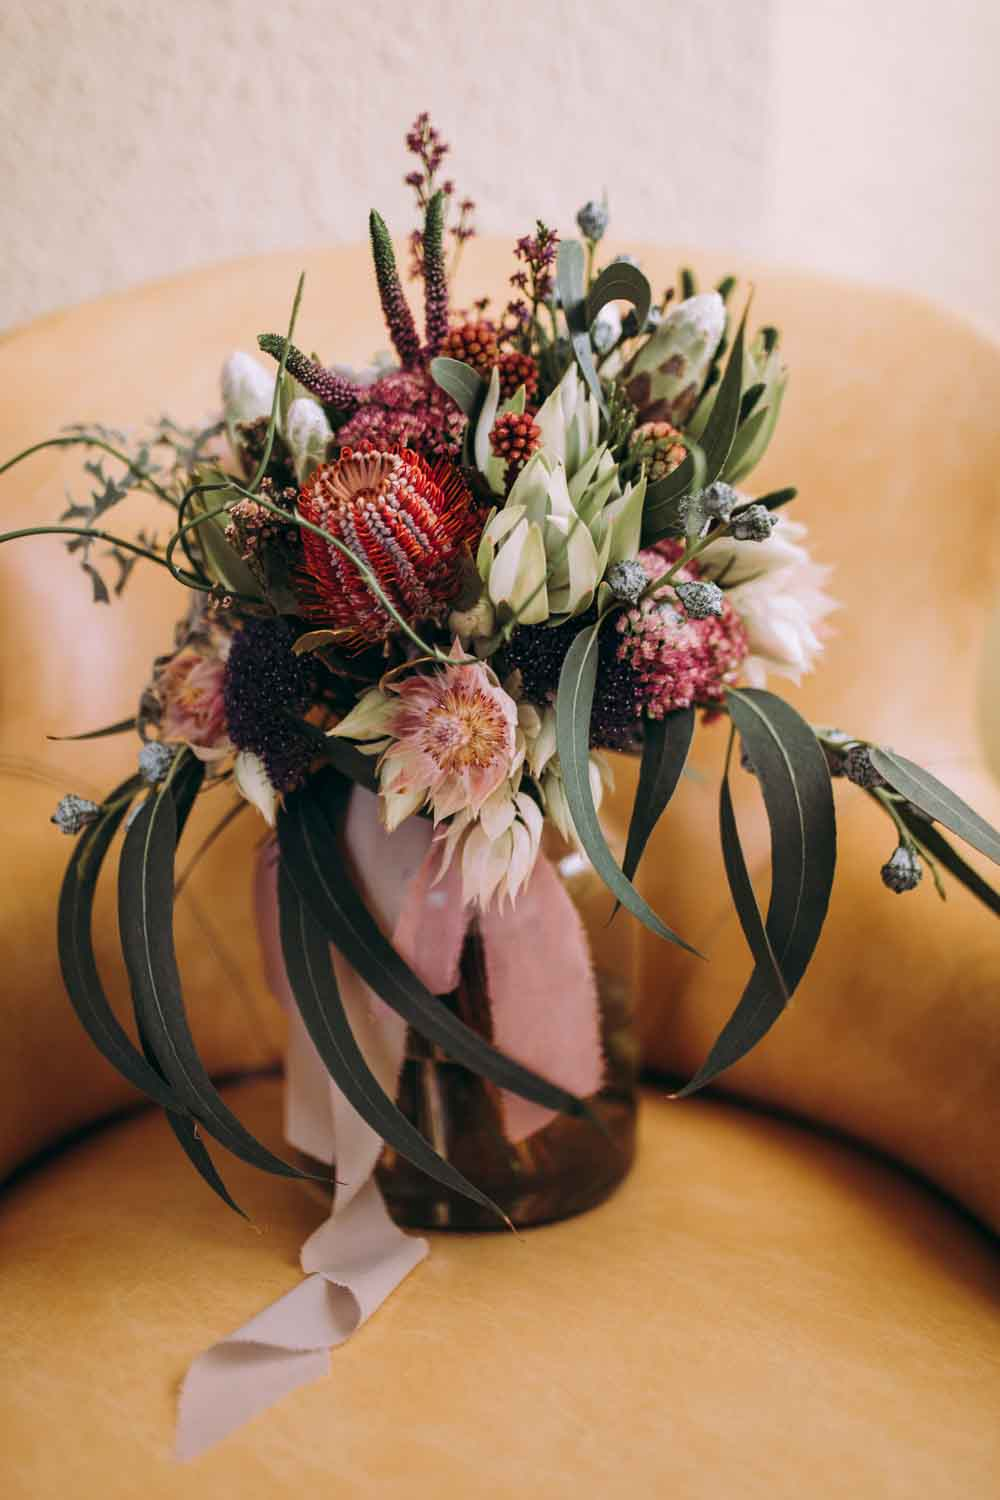 Bouquet Flowers Bride Bridal Foliage Greenery Protea Ribbons Mountain Wedding Spain Lorena Erre